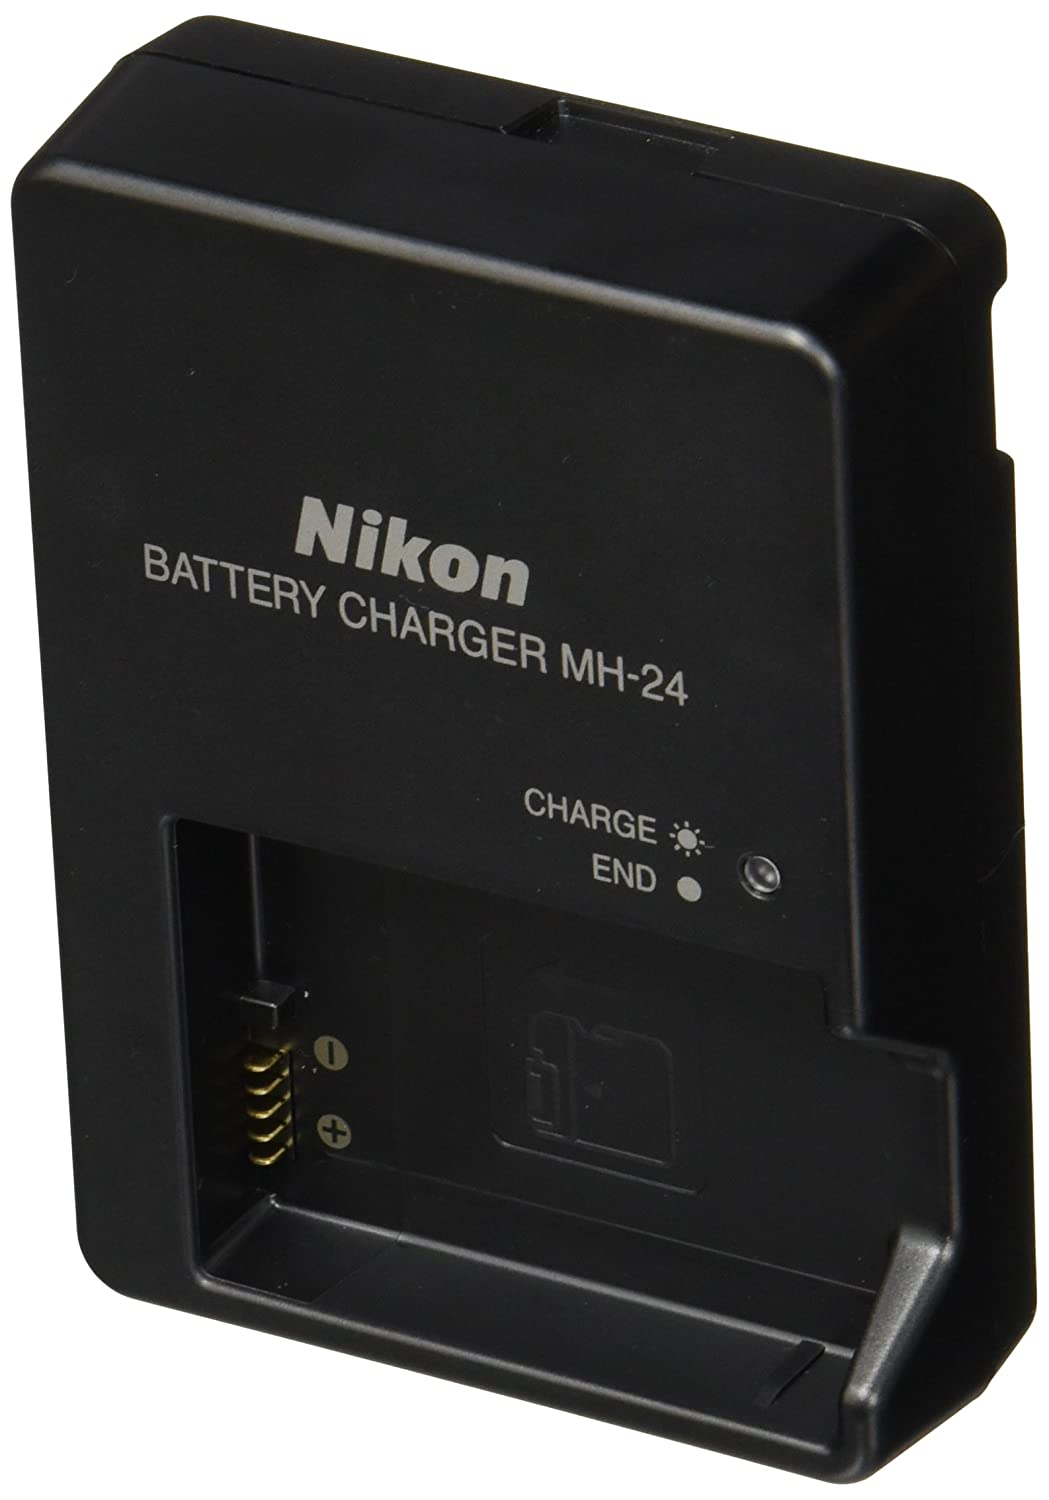 Nikon MH-24 Quick Charger for EN-EL14